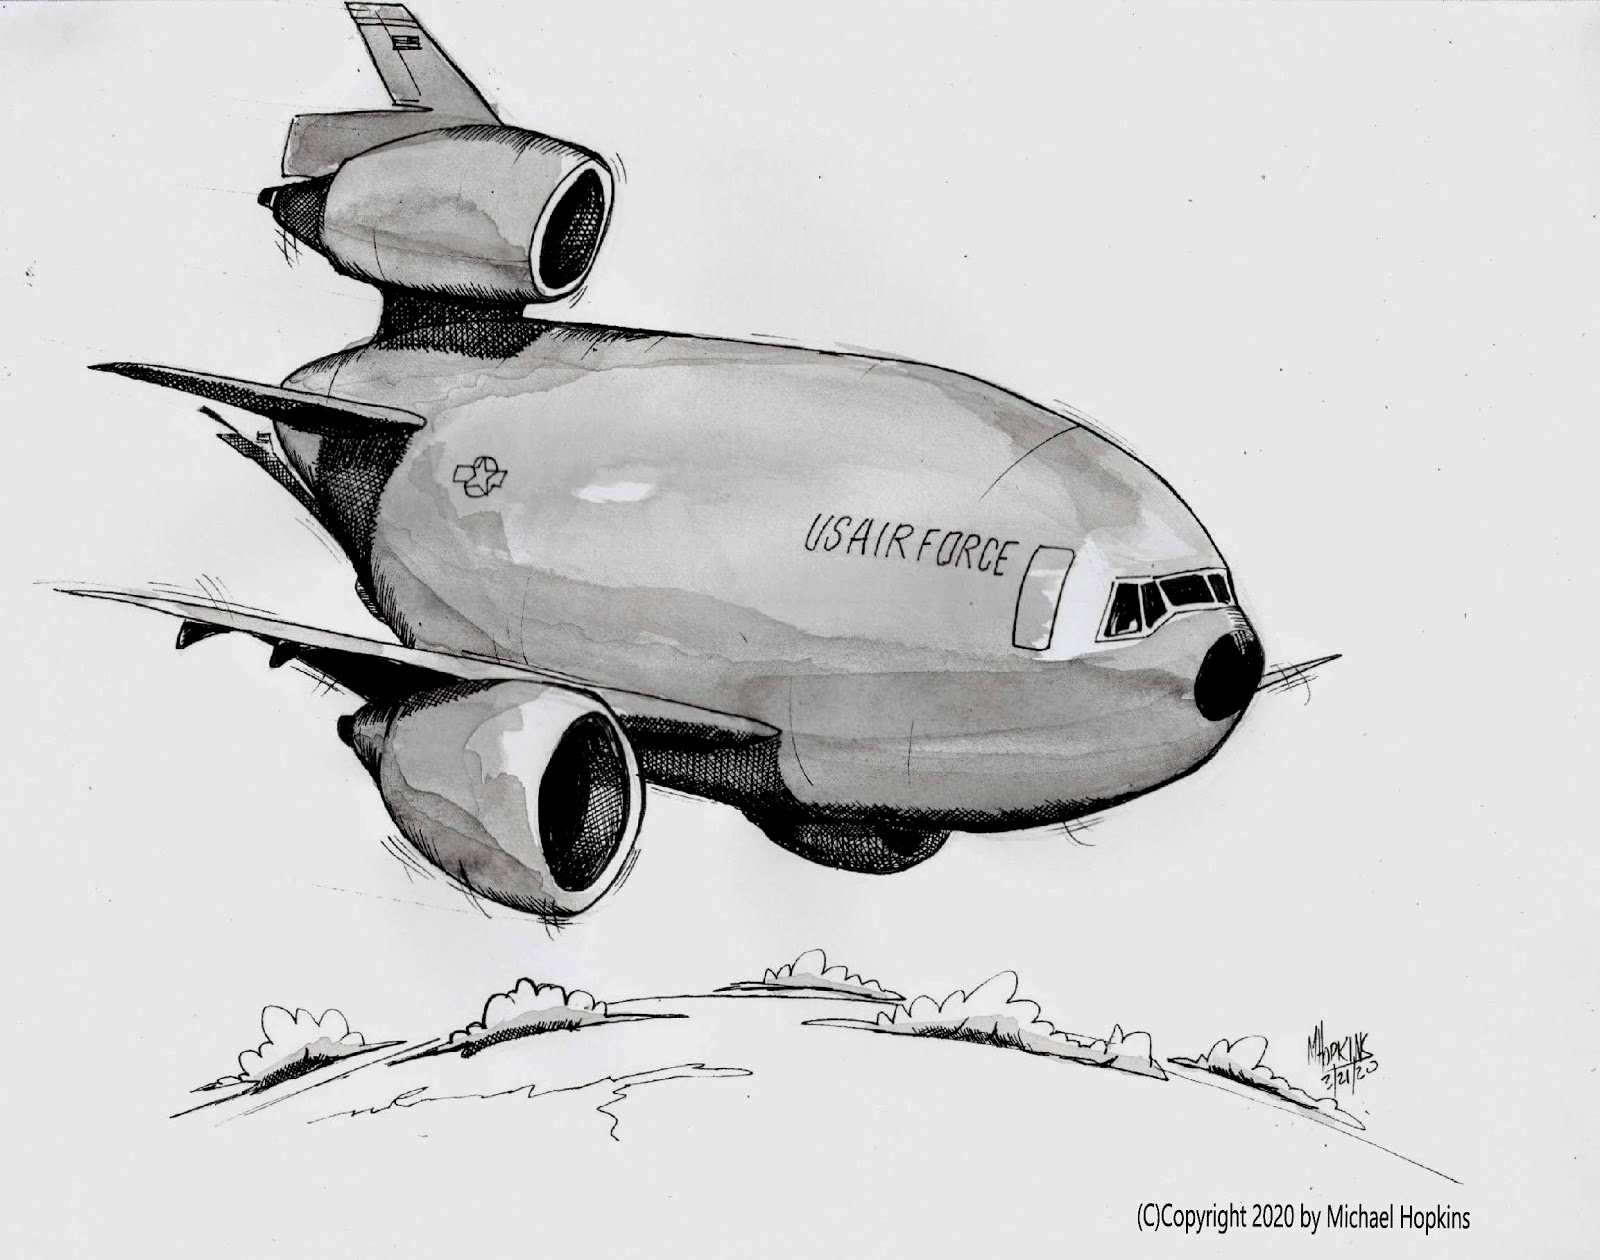 USAF KC-10 - Original Pen & Ink Aviation Caricature by Michael Hopkins on Ebay!